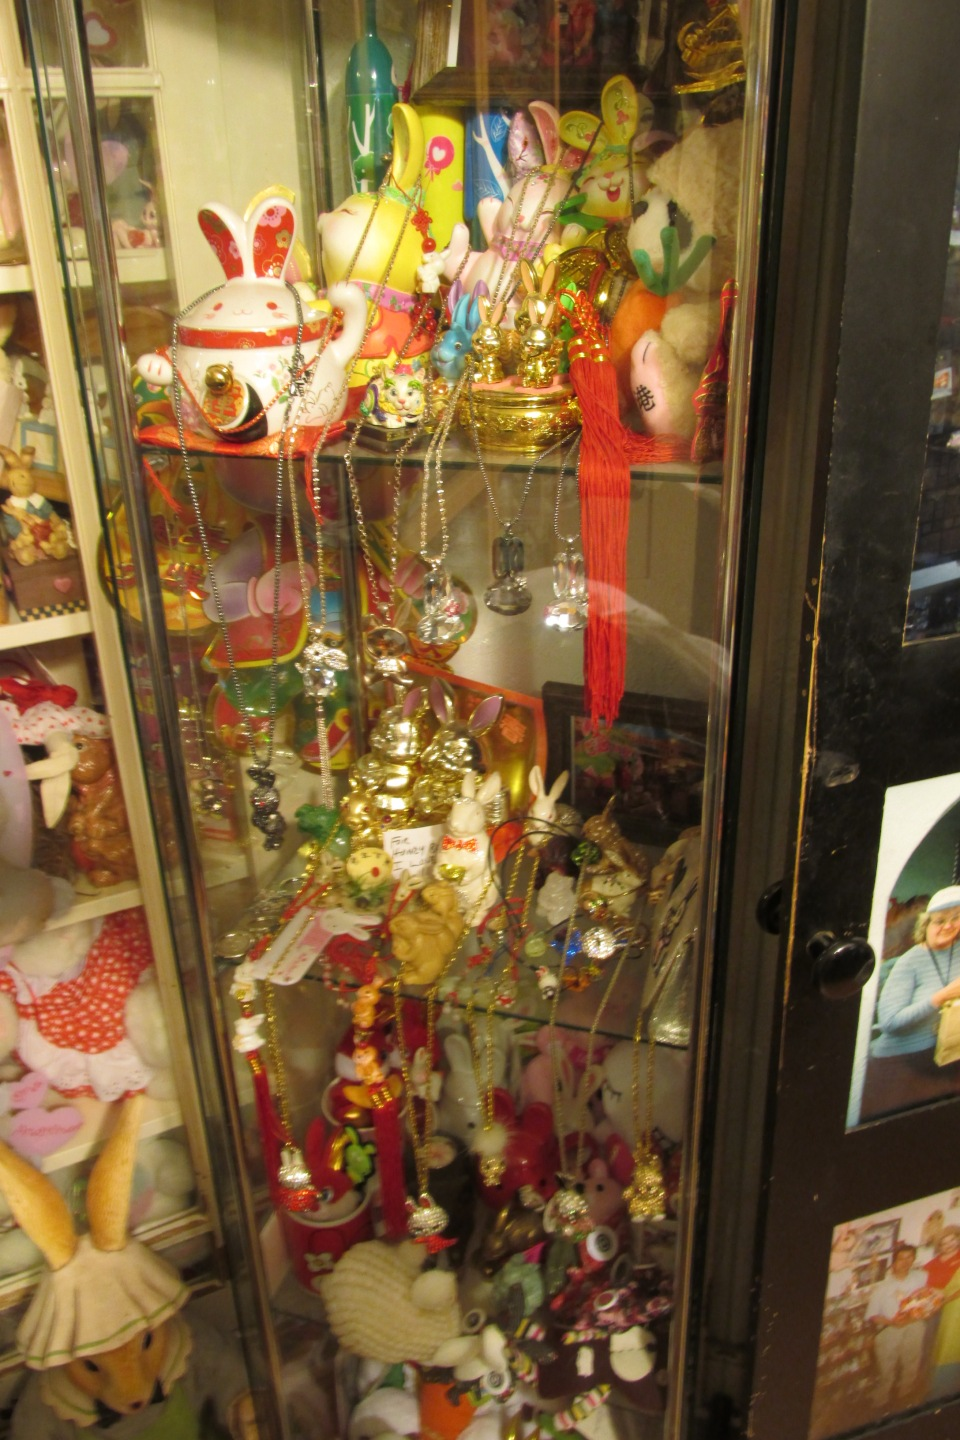 Some sparkly trinkets collected from Hong Kong back when they were celebrating the Year of the Rabbit in 2011.